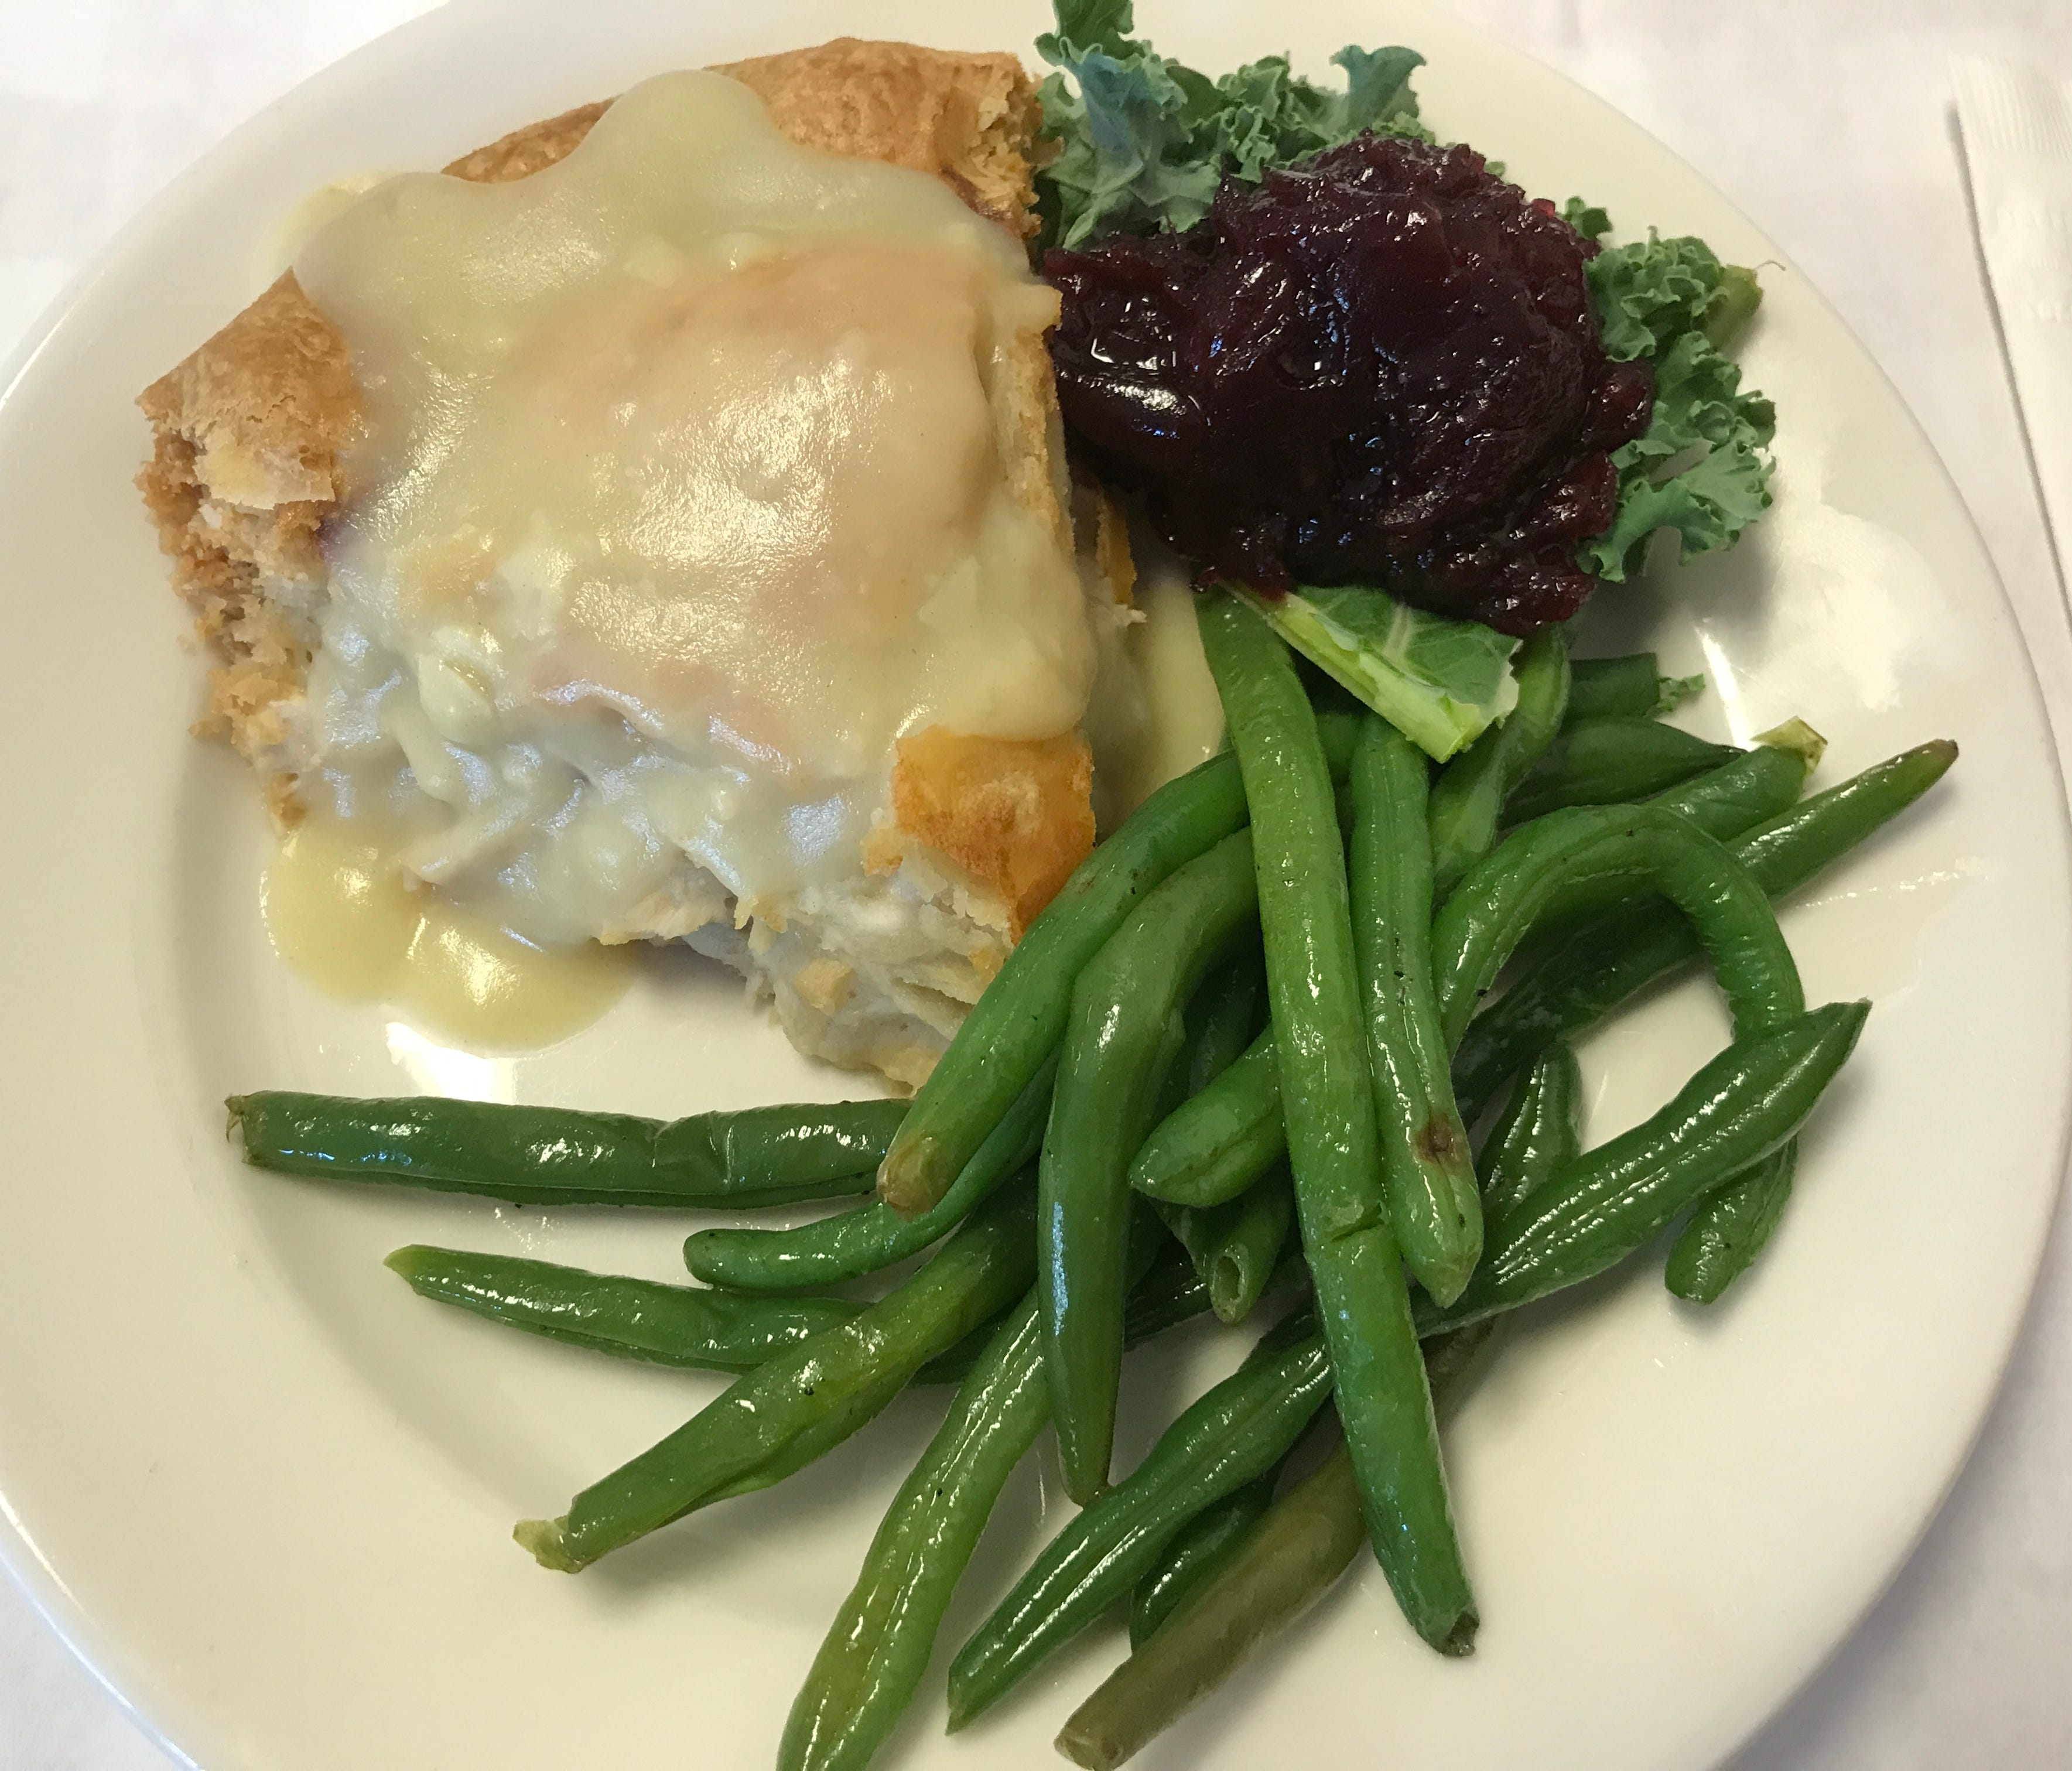 The main event at Centerville Pie Company and the dish that made Oprah's Favorite Things list is the Signature Chicken Pie, with nothing but lots of meaty chicken and gravy. It is on the menu every day and served with a veggie side and cranberry sauc